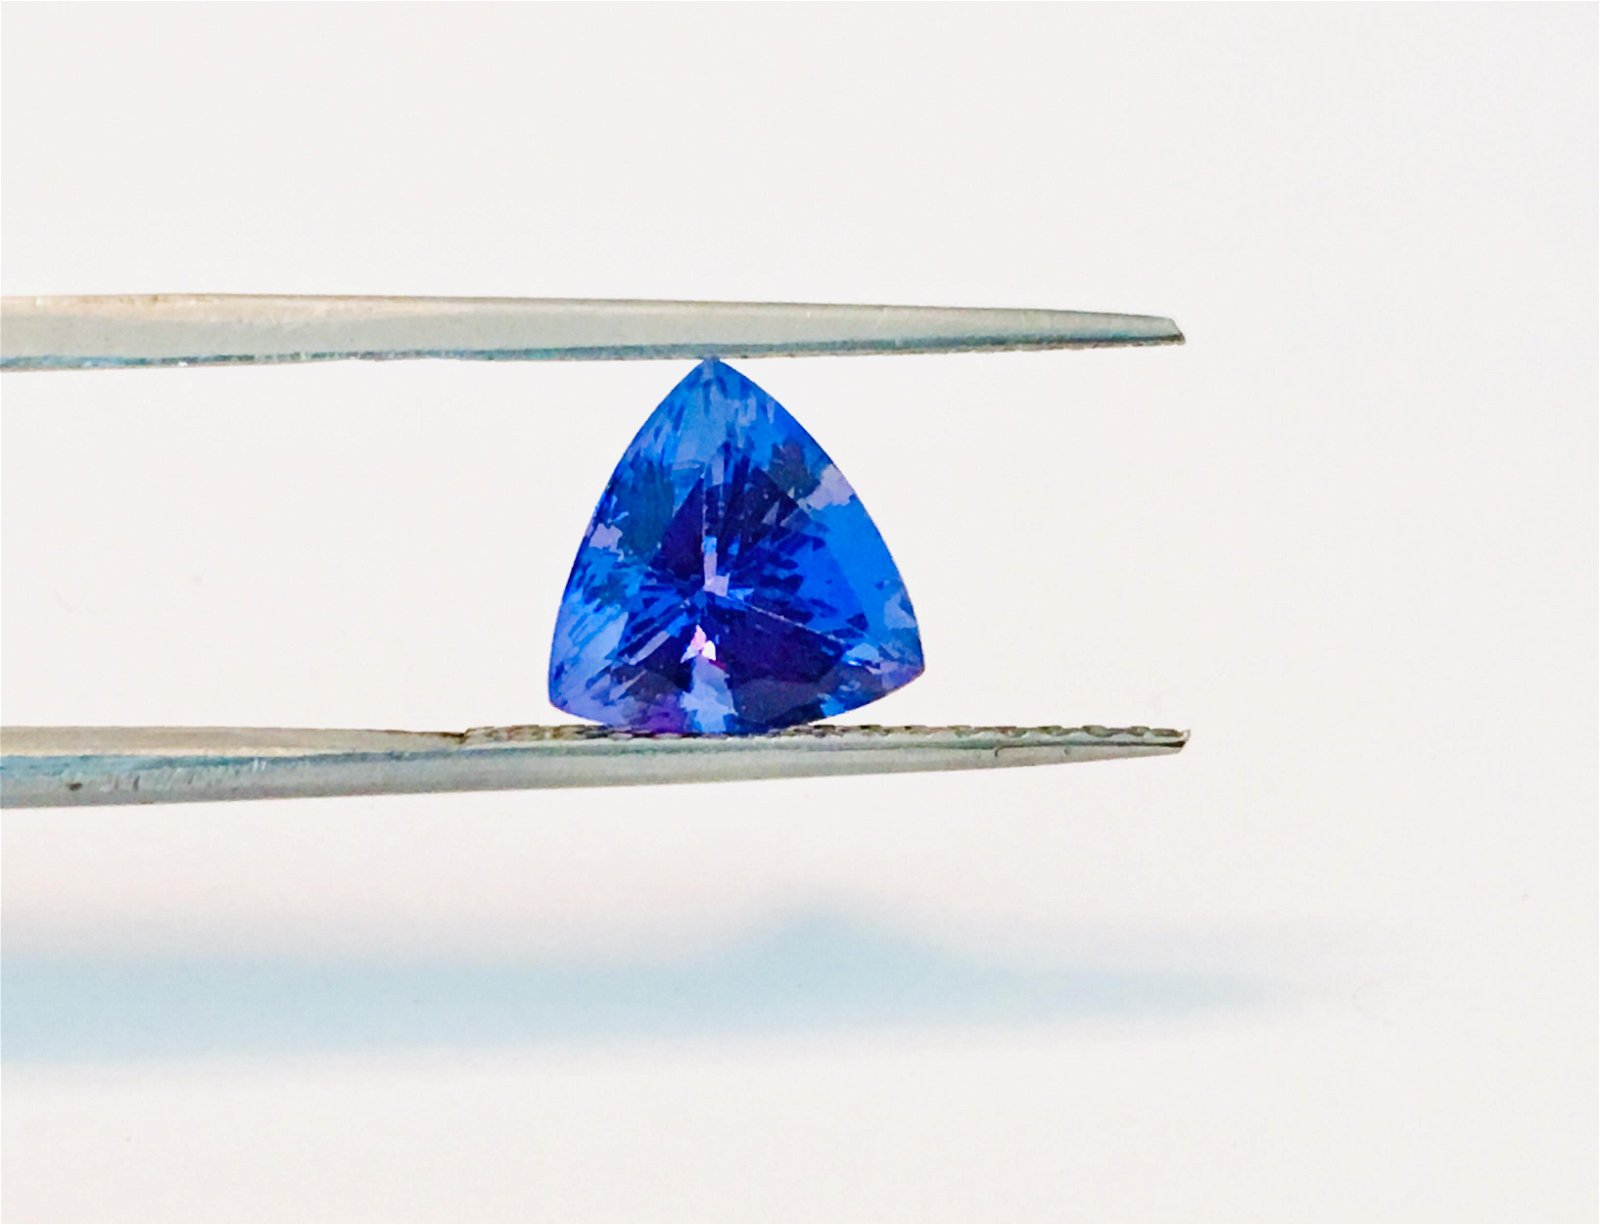 100% Natural AAA 2.70 Carat Loose Tanzanite Gemstone